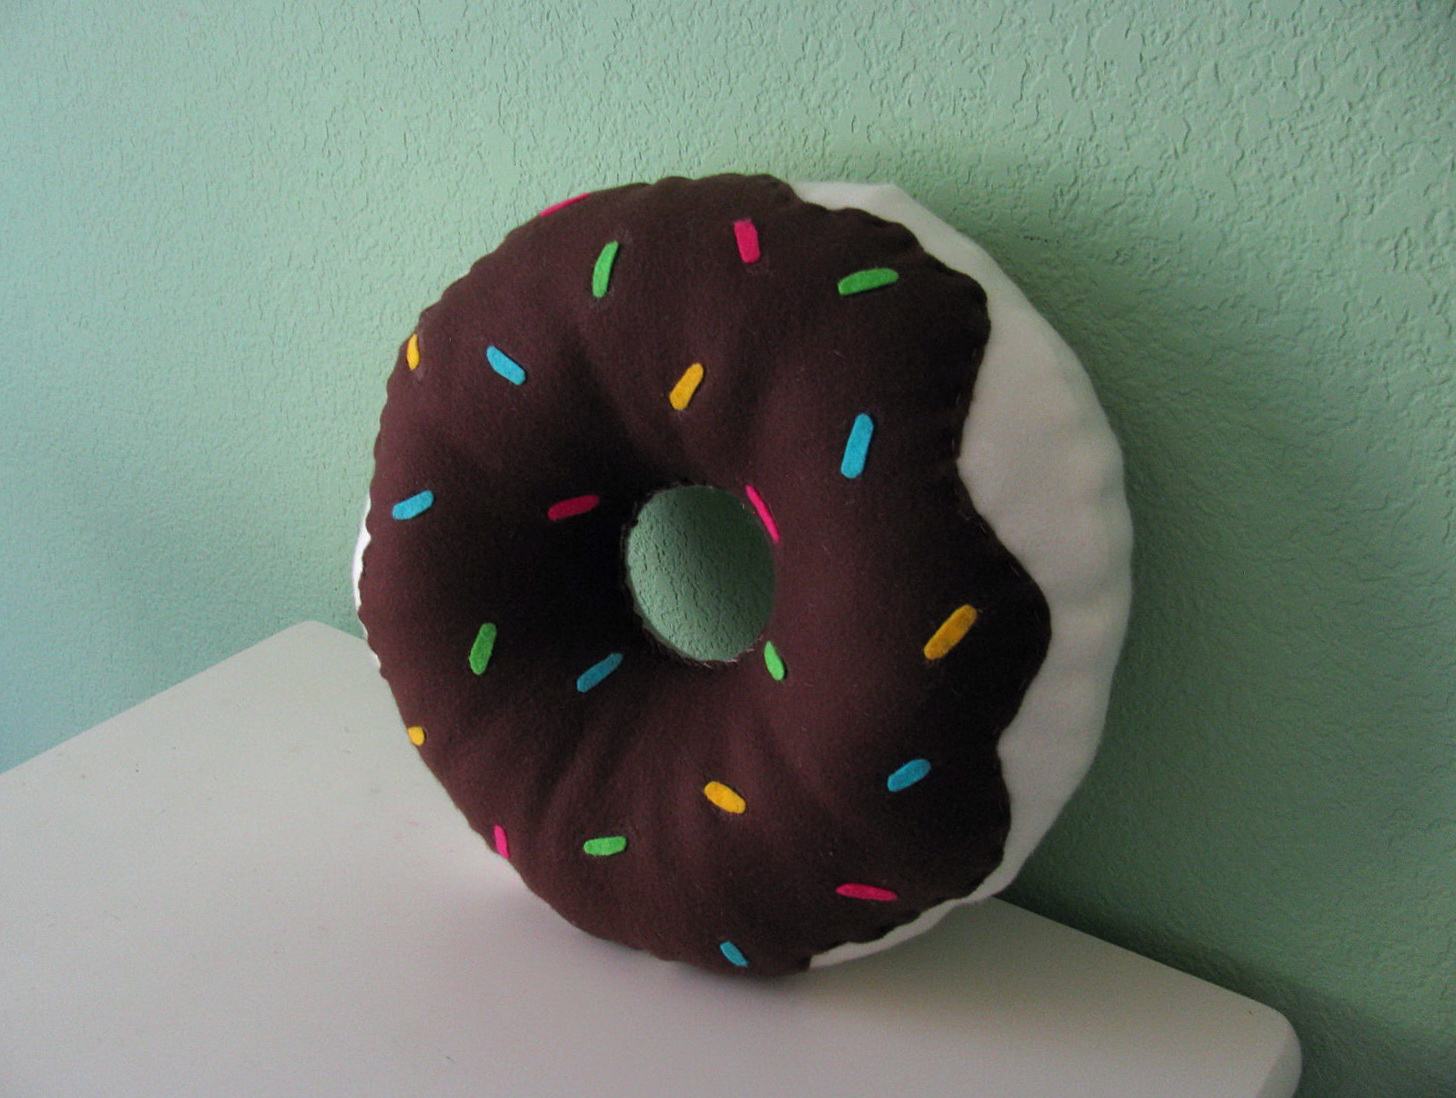 donut seat cushion amazon home design ideas